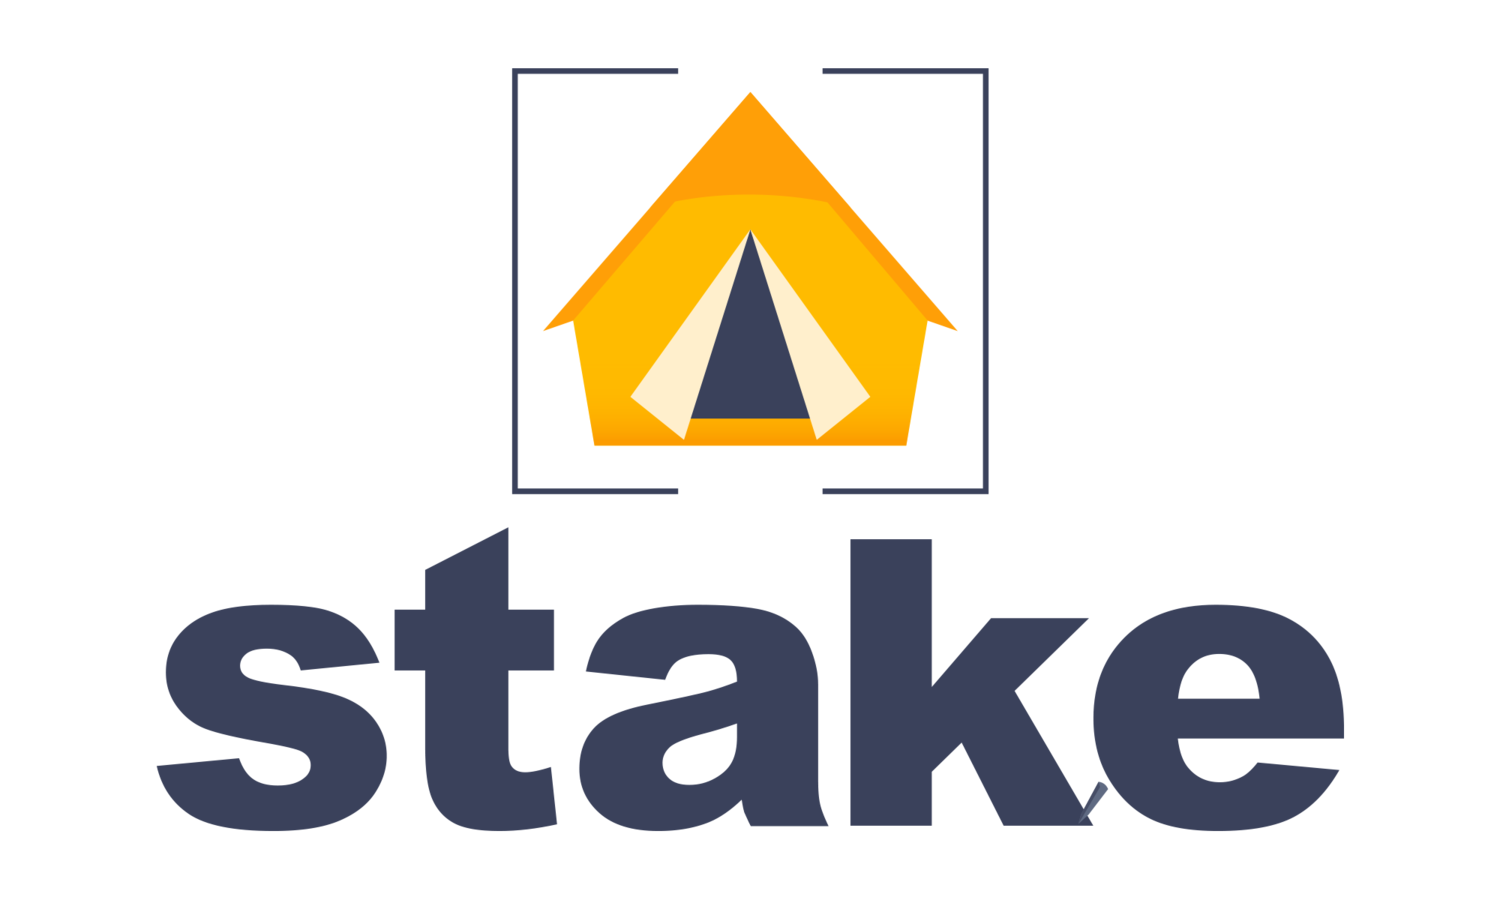 wearestakers.com